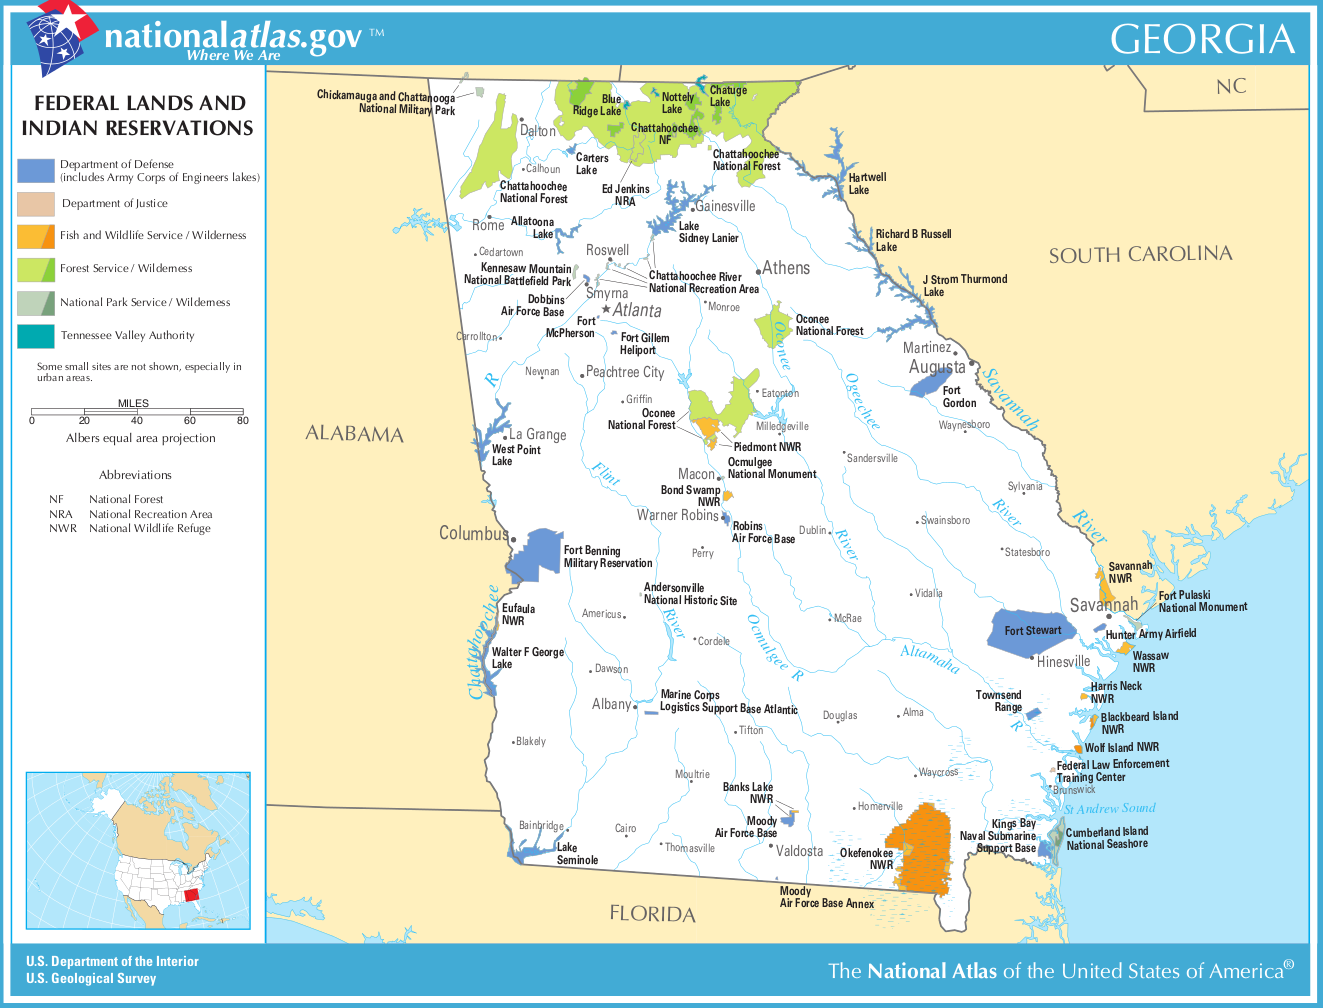 Map Of Georgia Map Federal Lands And Indian Reservations - Georgia map peachtree city